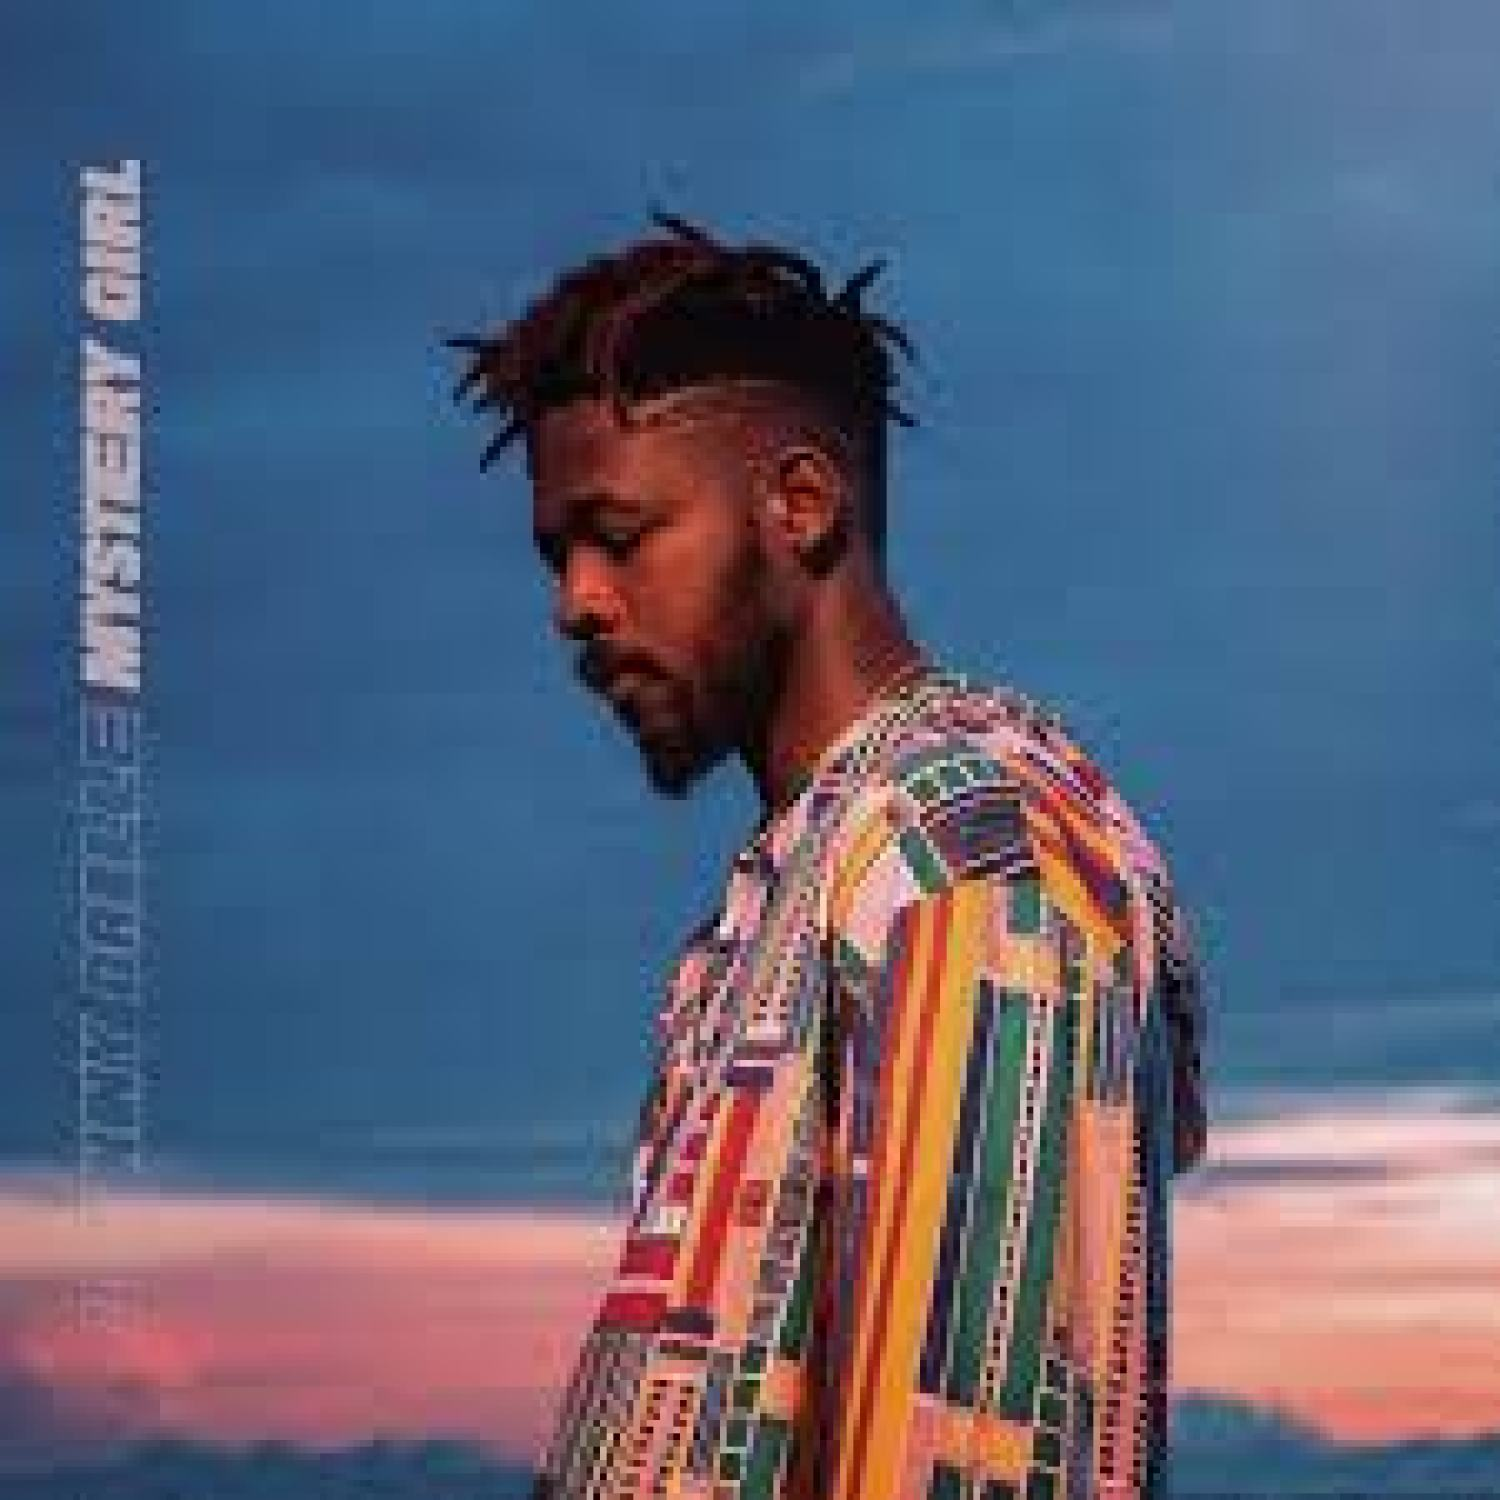 DOWNLOAD MP3: Johnny Drille – Mystery Girl (Free MP3) AUDIO 320kbps